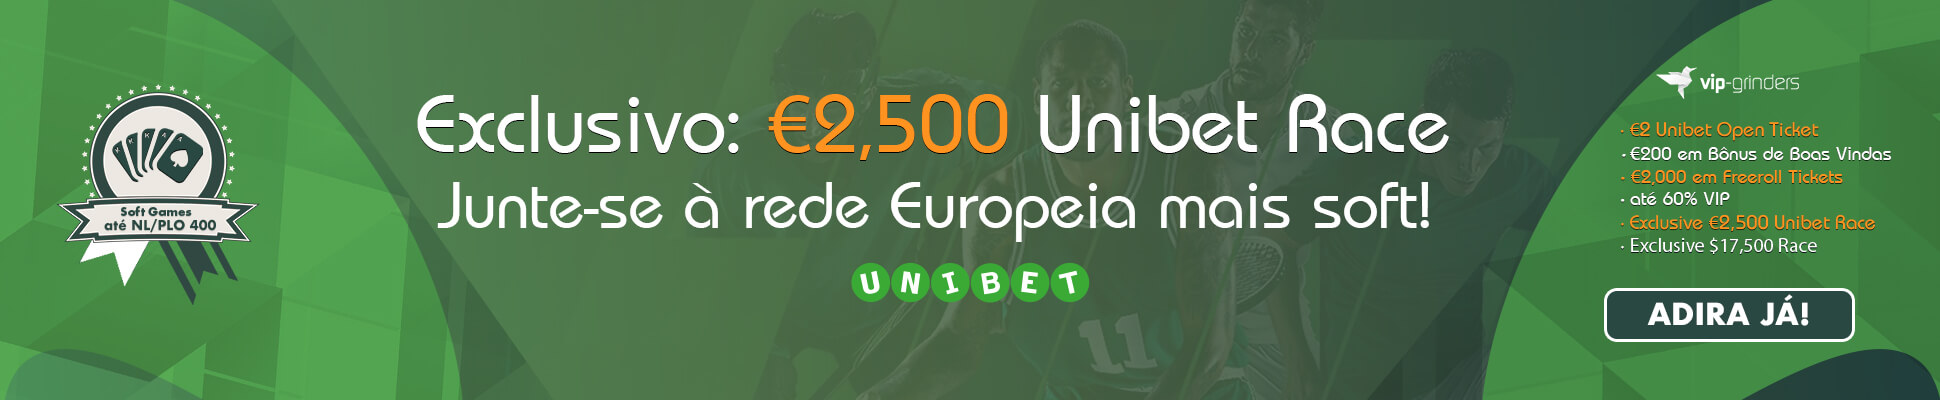 UNIBET-SLider-May